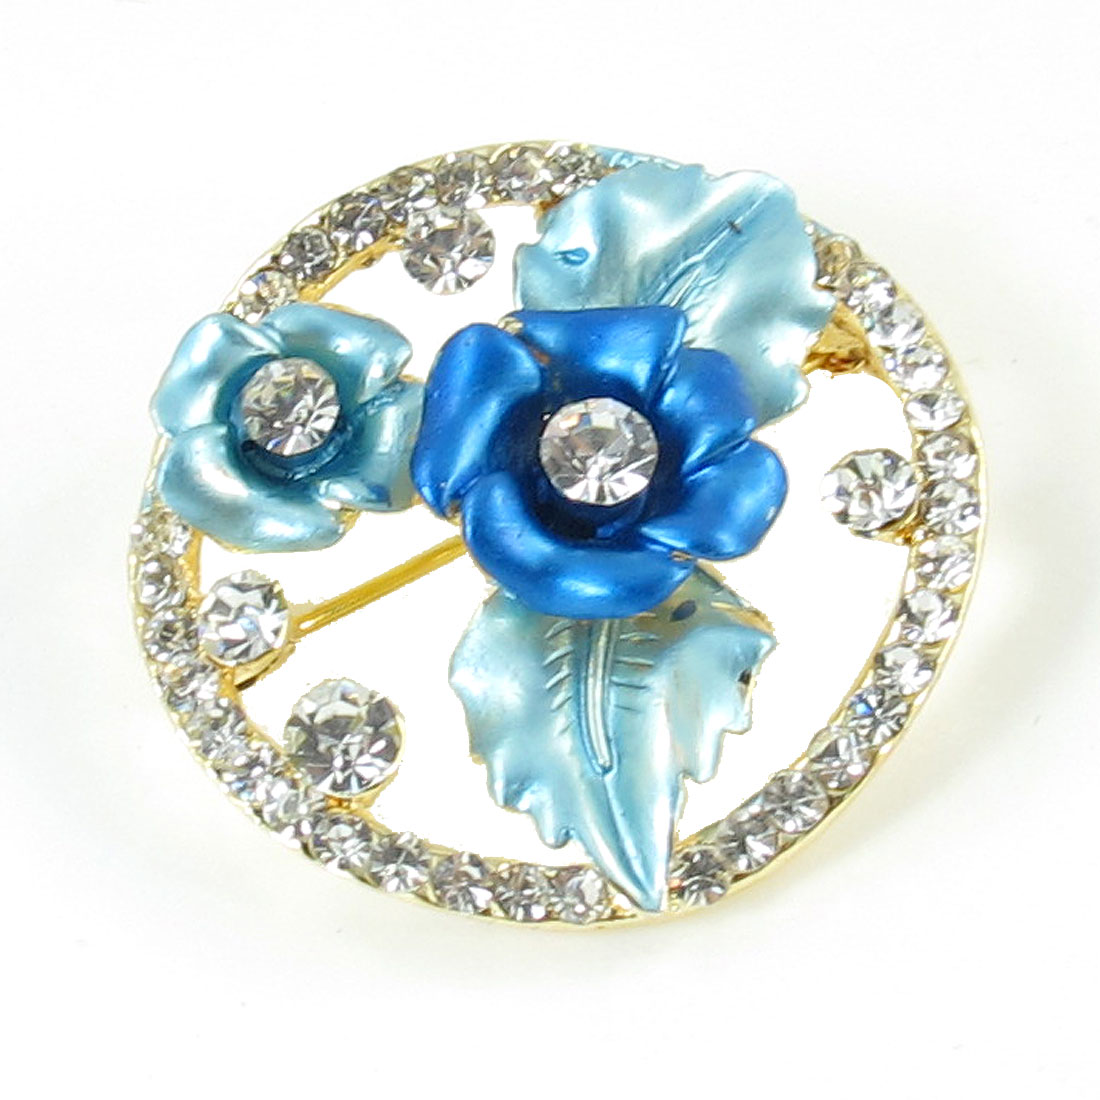 Lady Rhinestones Flower Decor Round Shaped Metal Safety Pin Brooch Blue